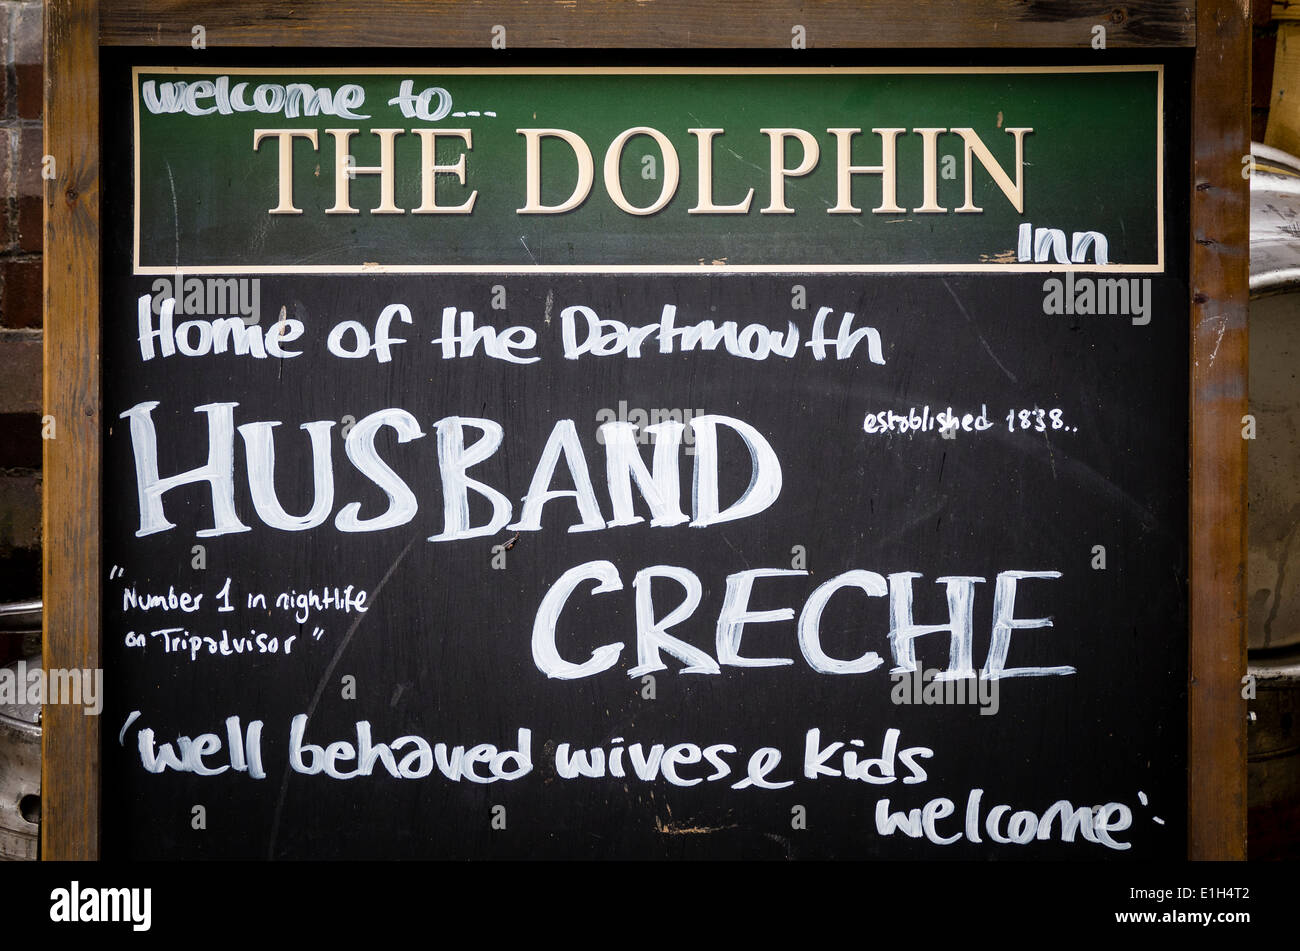 Humorous notice outside The Dolphin inn in UK - Stock Image